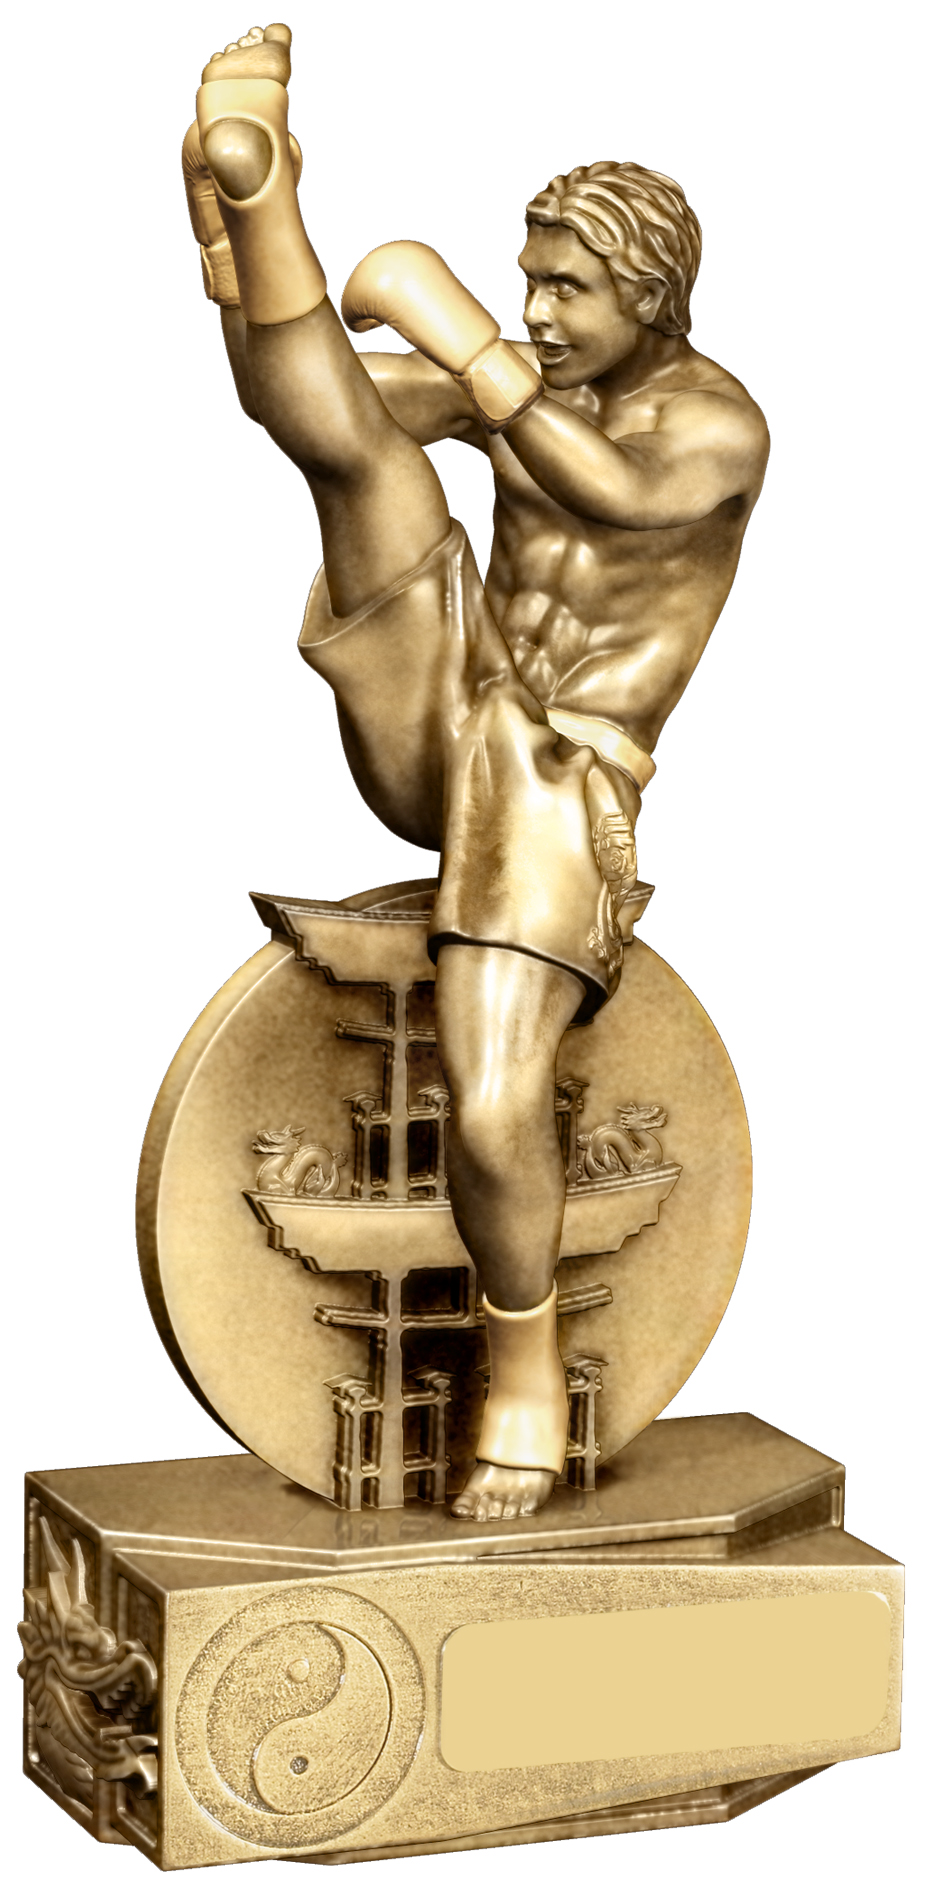 "Kickboxing Male Action Figure Trophy Gold 22cm (8.75"")"